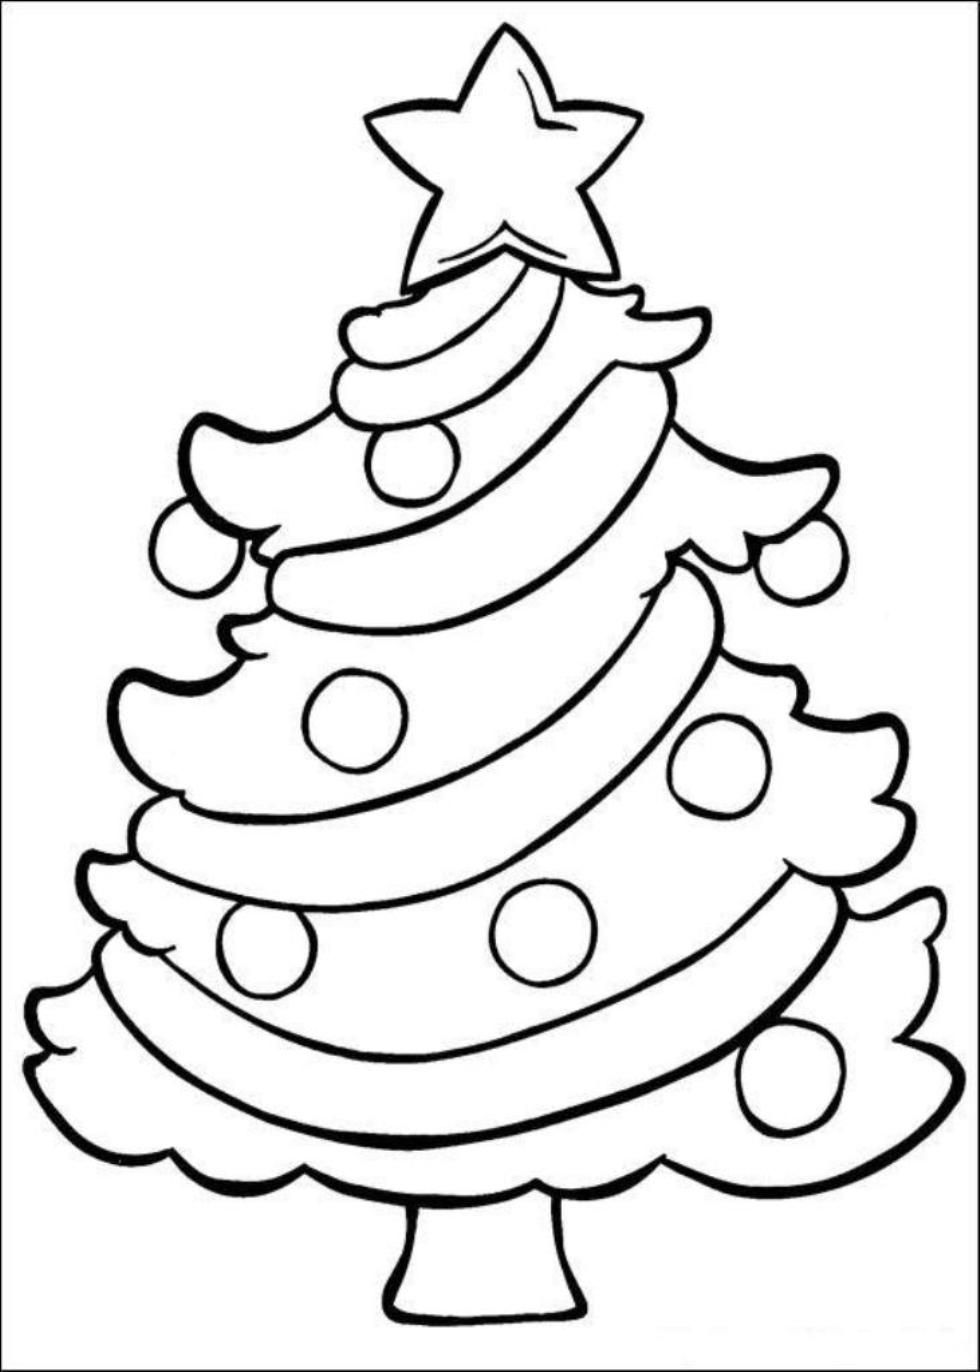 Christian Christmas Coloring Pages | fun | Pinterest | Christmas ...